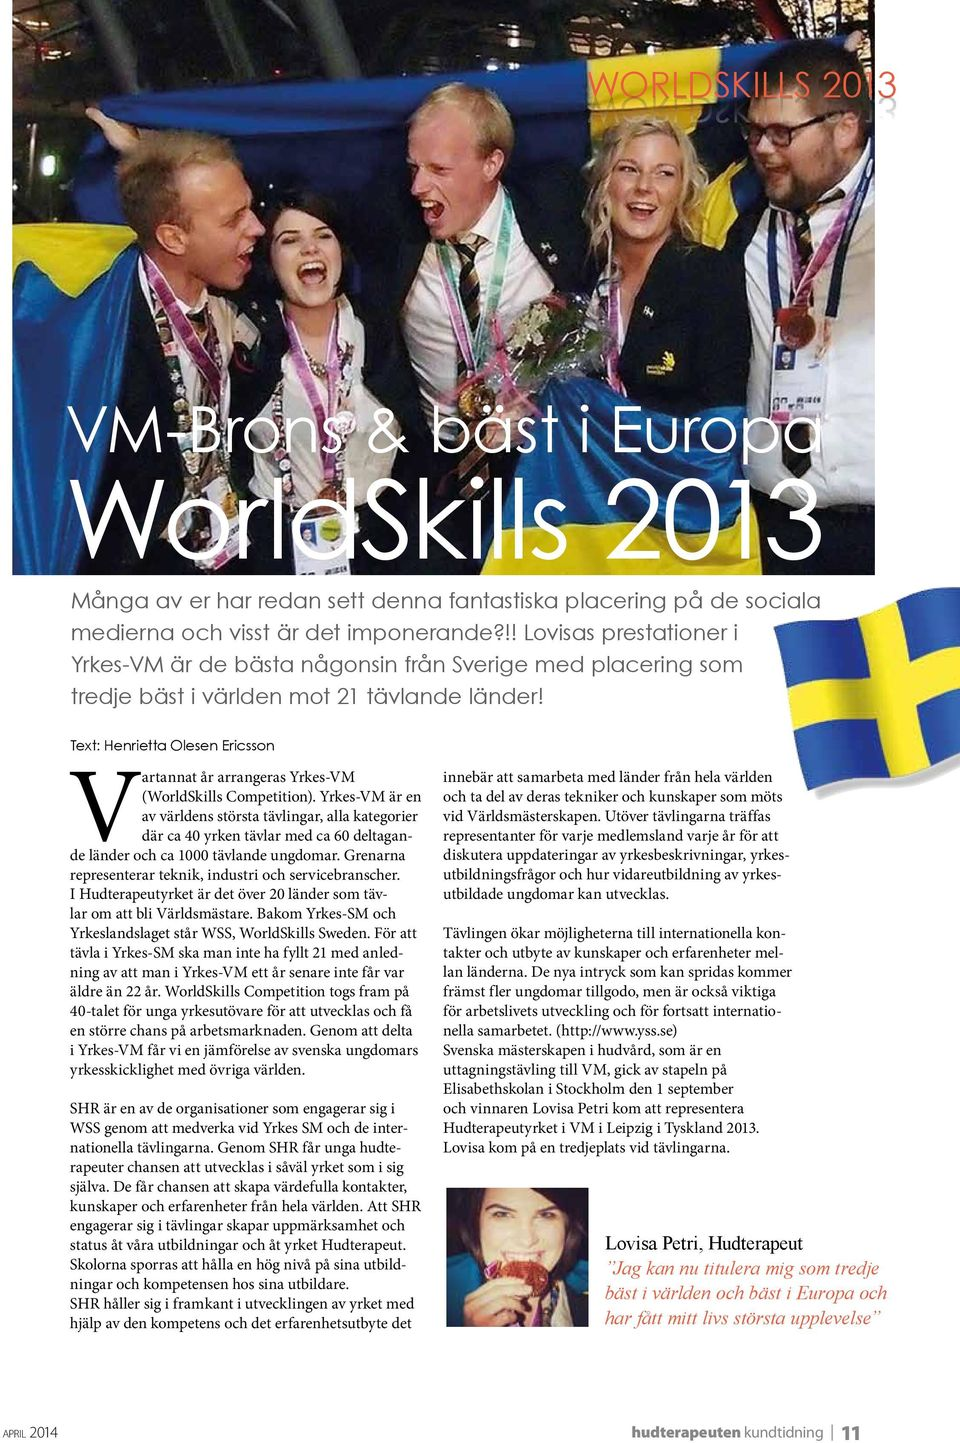 Text: Henrietta Olesen Ericsson Vartannat år arrangeras Yrkes-VM (WorldSkills Competition).